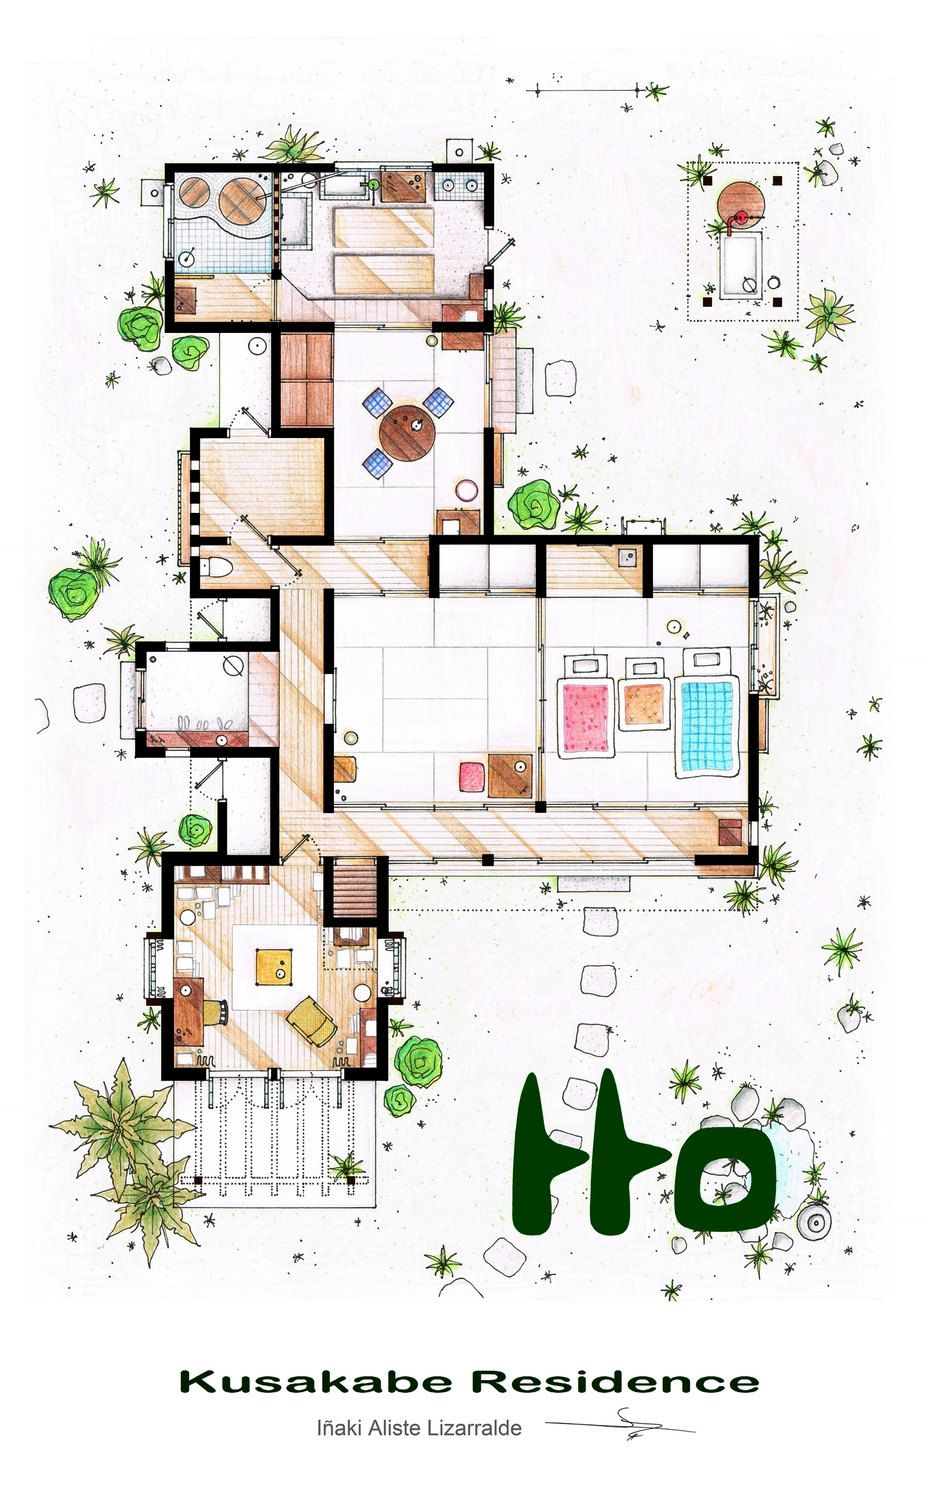 Kusakabe Residence From Tonari No Totoro Film Etsy In 2021 Floor Plan Drawing Interior Design Sketches Traditional Japanese House